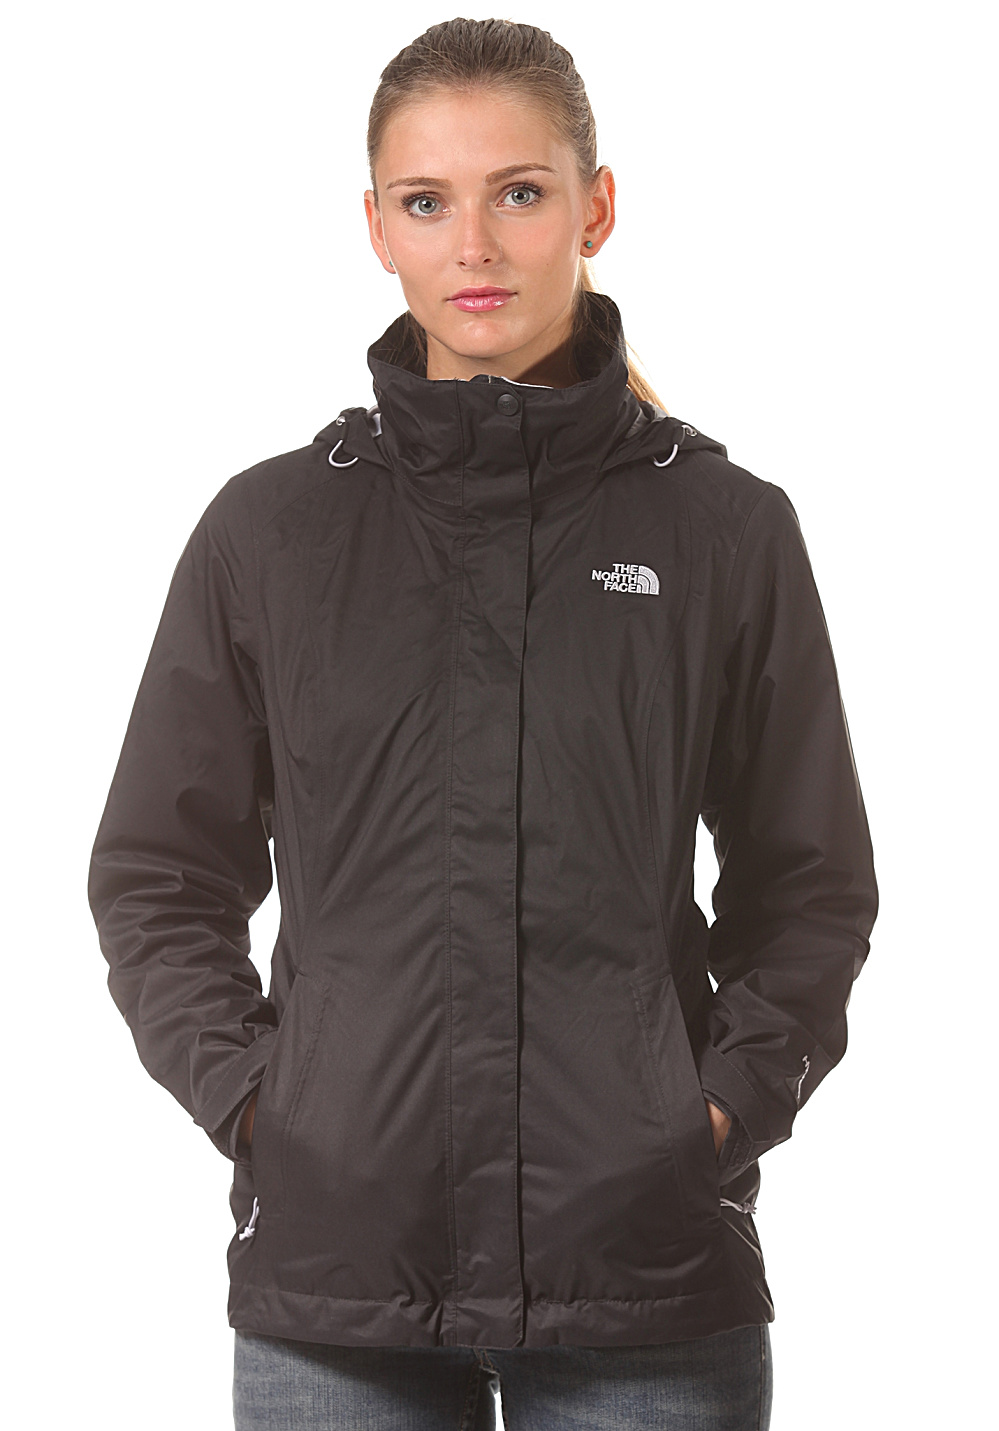 d9c00a528 THE NORTH FACE Evolve II Triclimate - Outdoor Jacket for Women ...